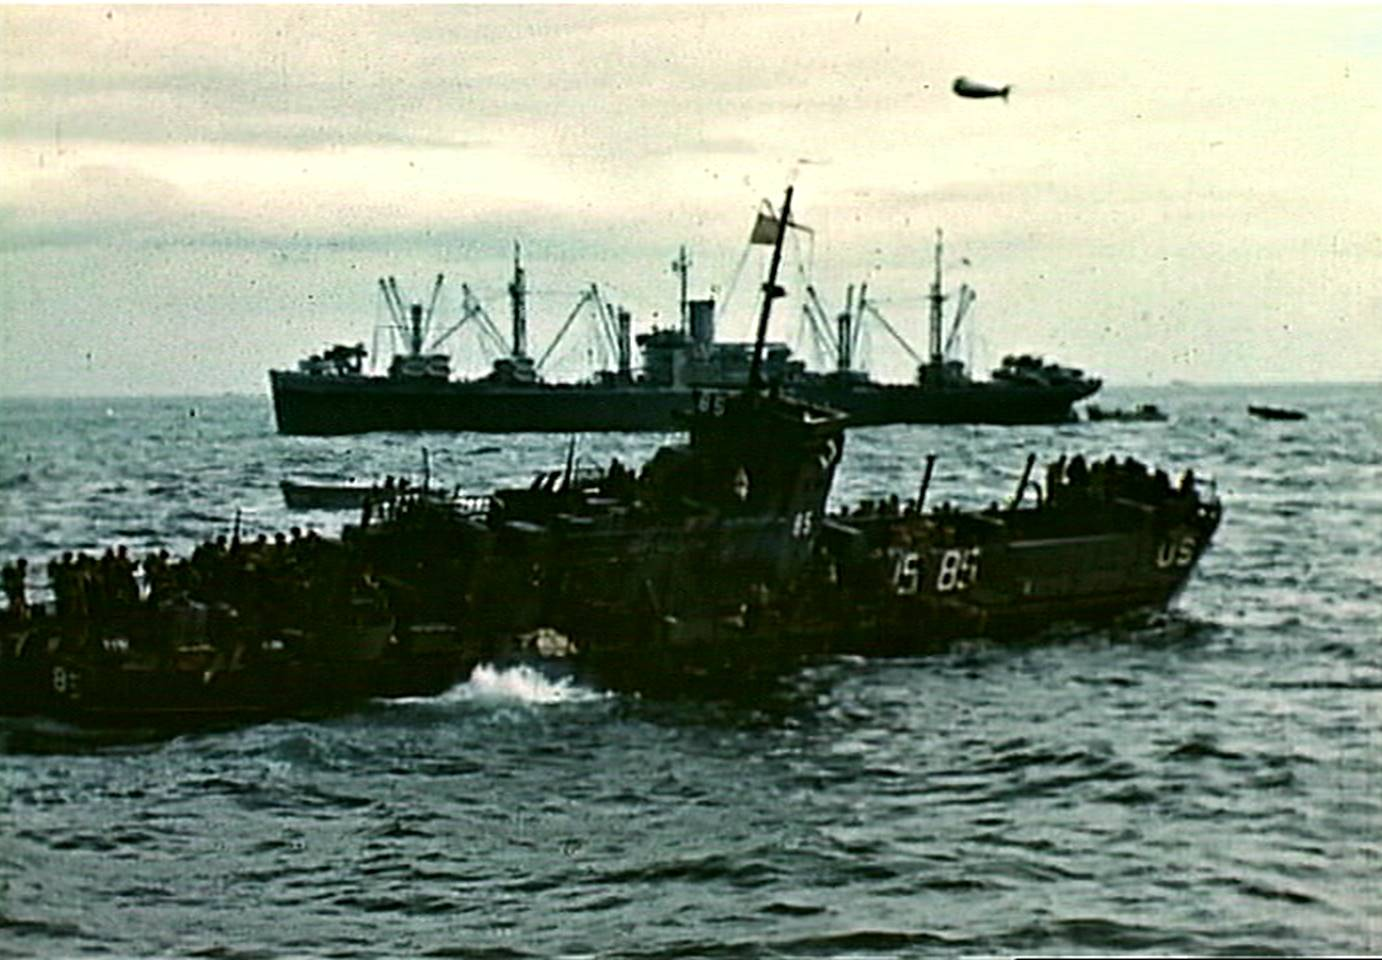 Fig. 15: Fatally damaged LCI(L)-85 returns to USS Samuel Chase, D-Day, frame from film by David T. Ruley